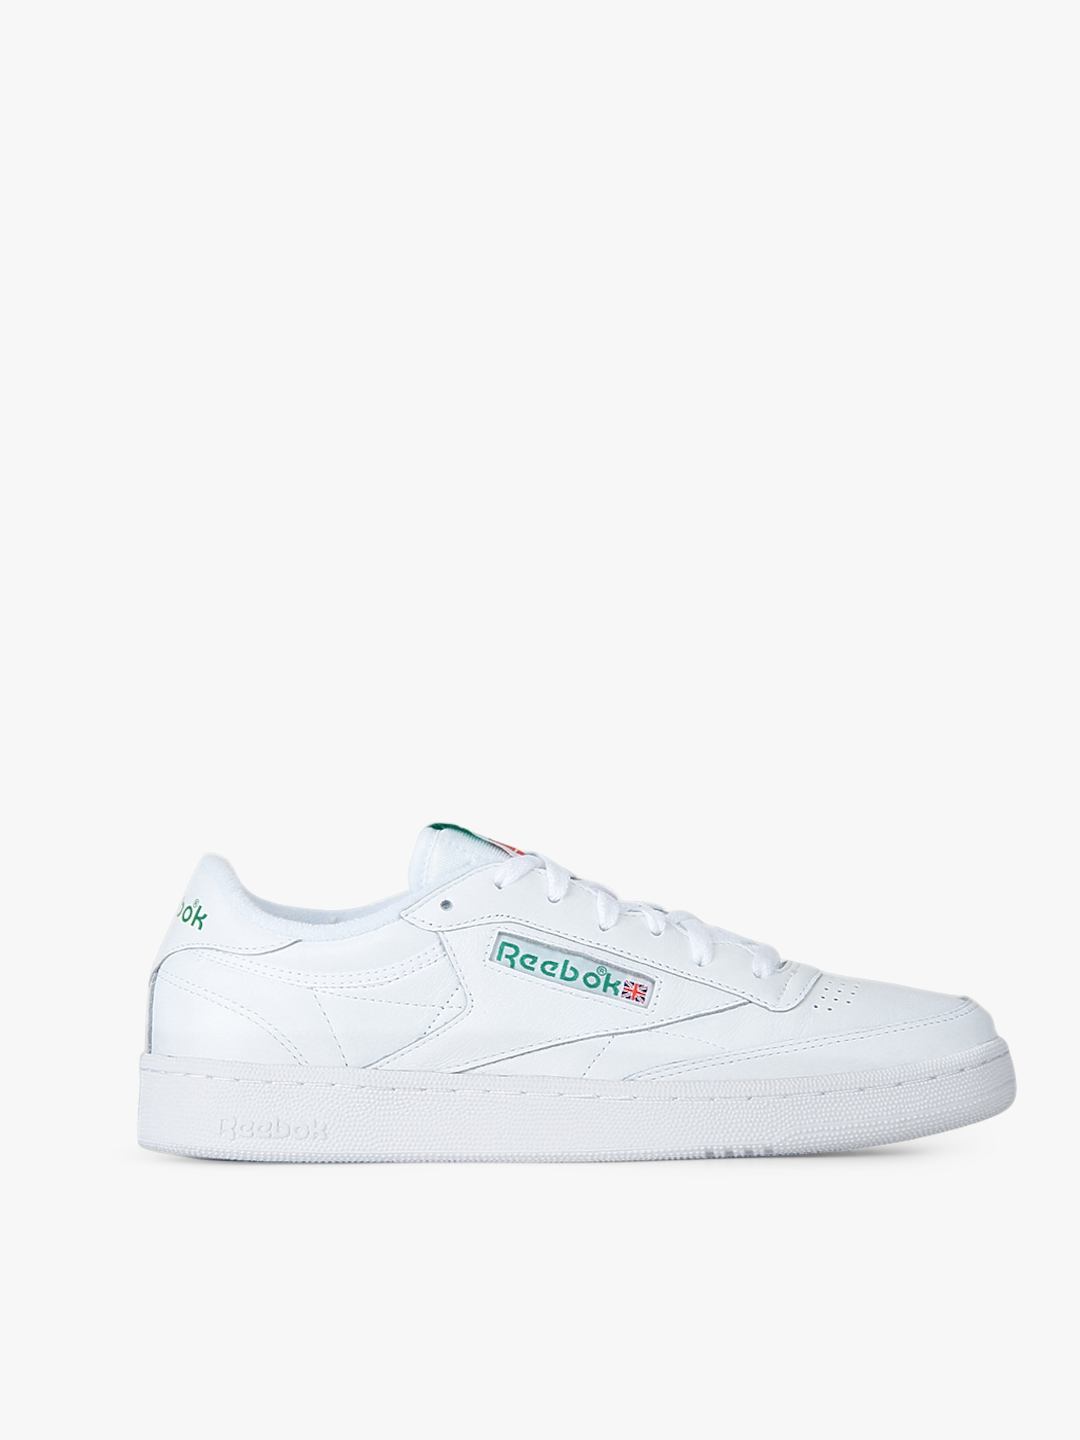 fc1eac630a52e Buy Reebok Men White Club C 85 Archive Sneakers - Casual Shoes for ...